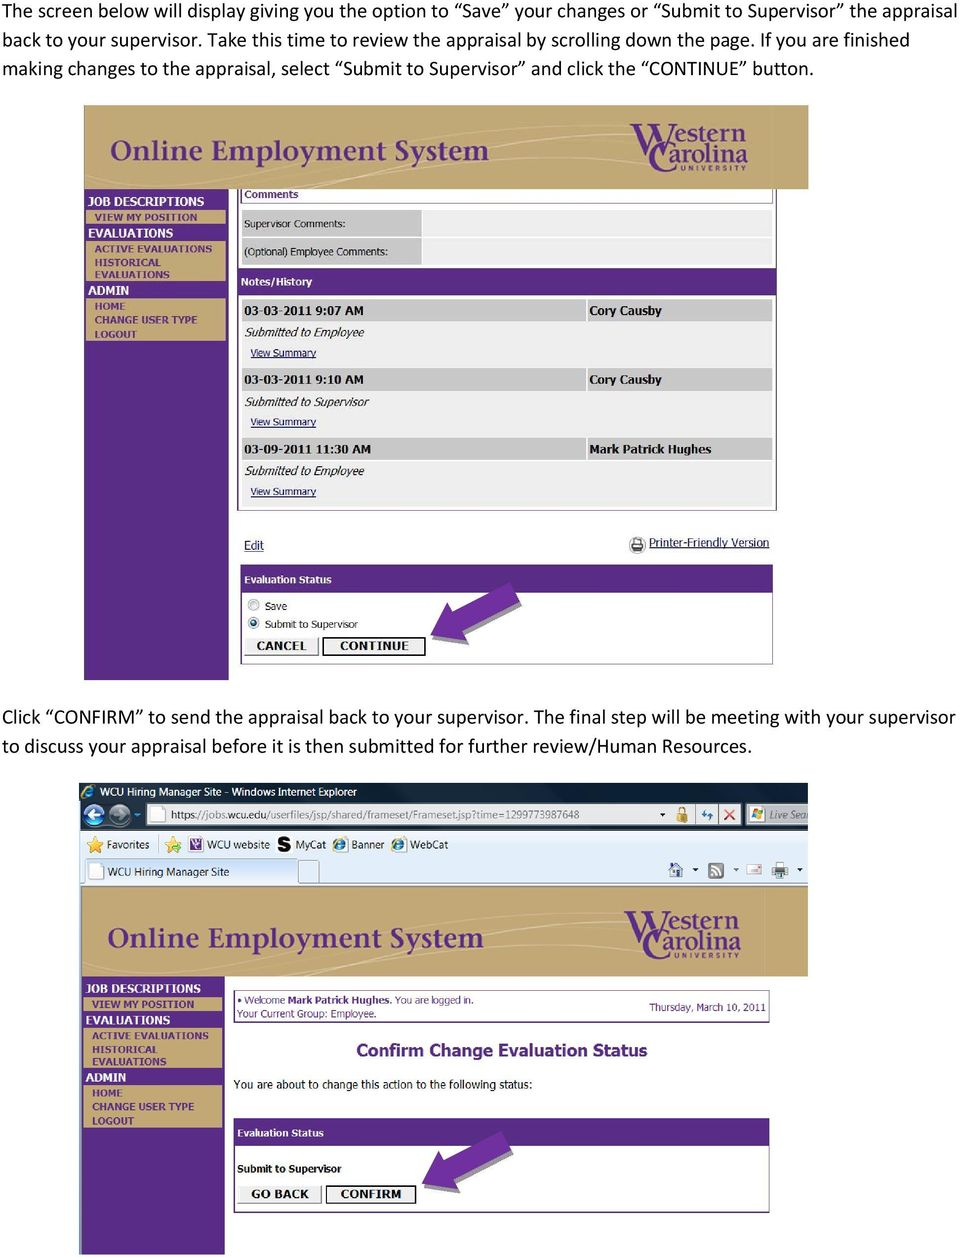 If you are finished making changes to the appraisal, select Submit to Supervisor and click the CONTINUE button.